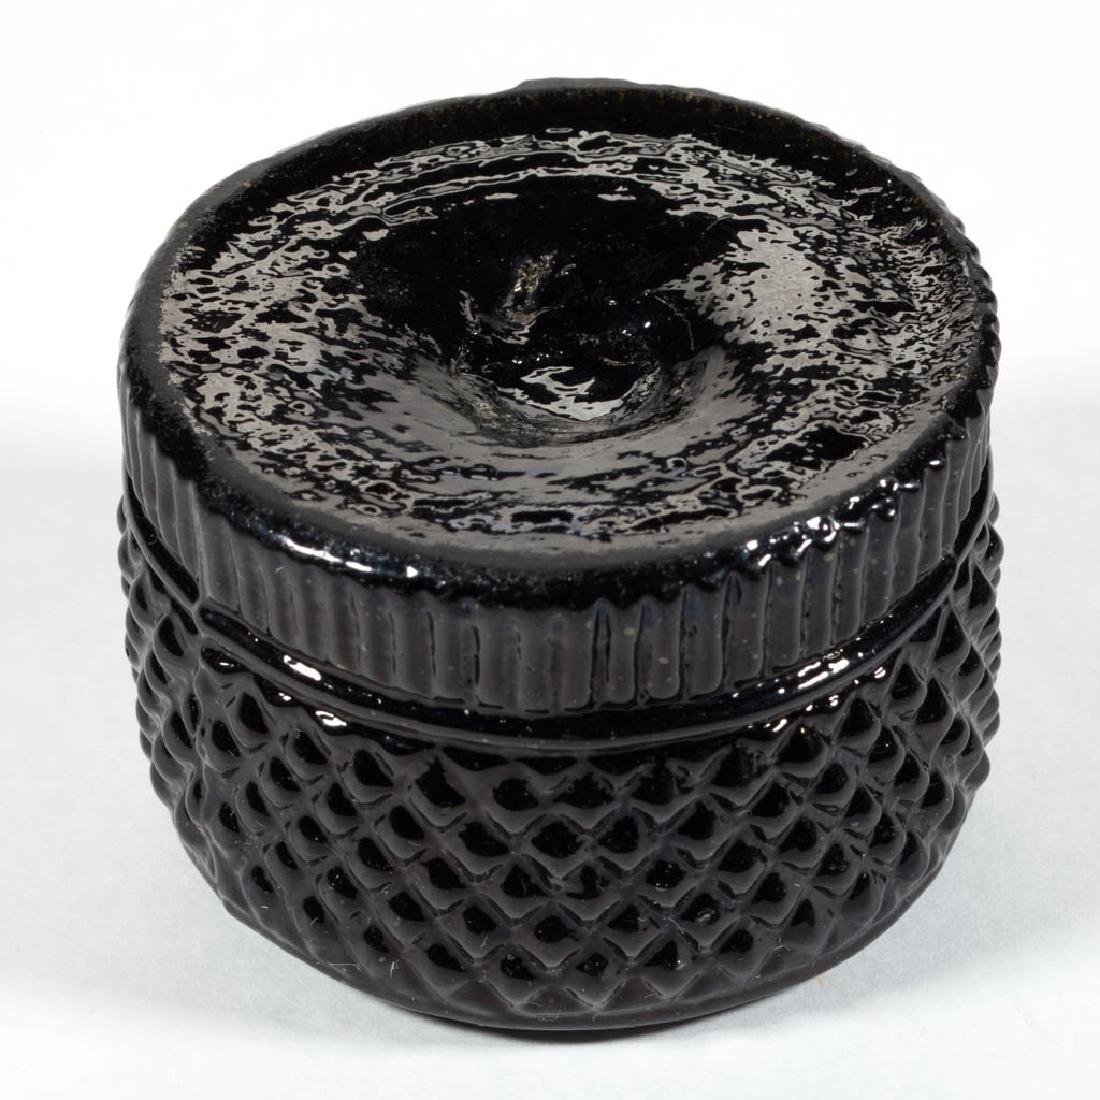 BLOWN-MOLDED GII-18 INKWELL - 2